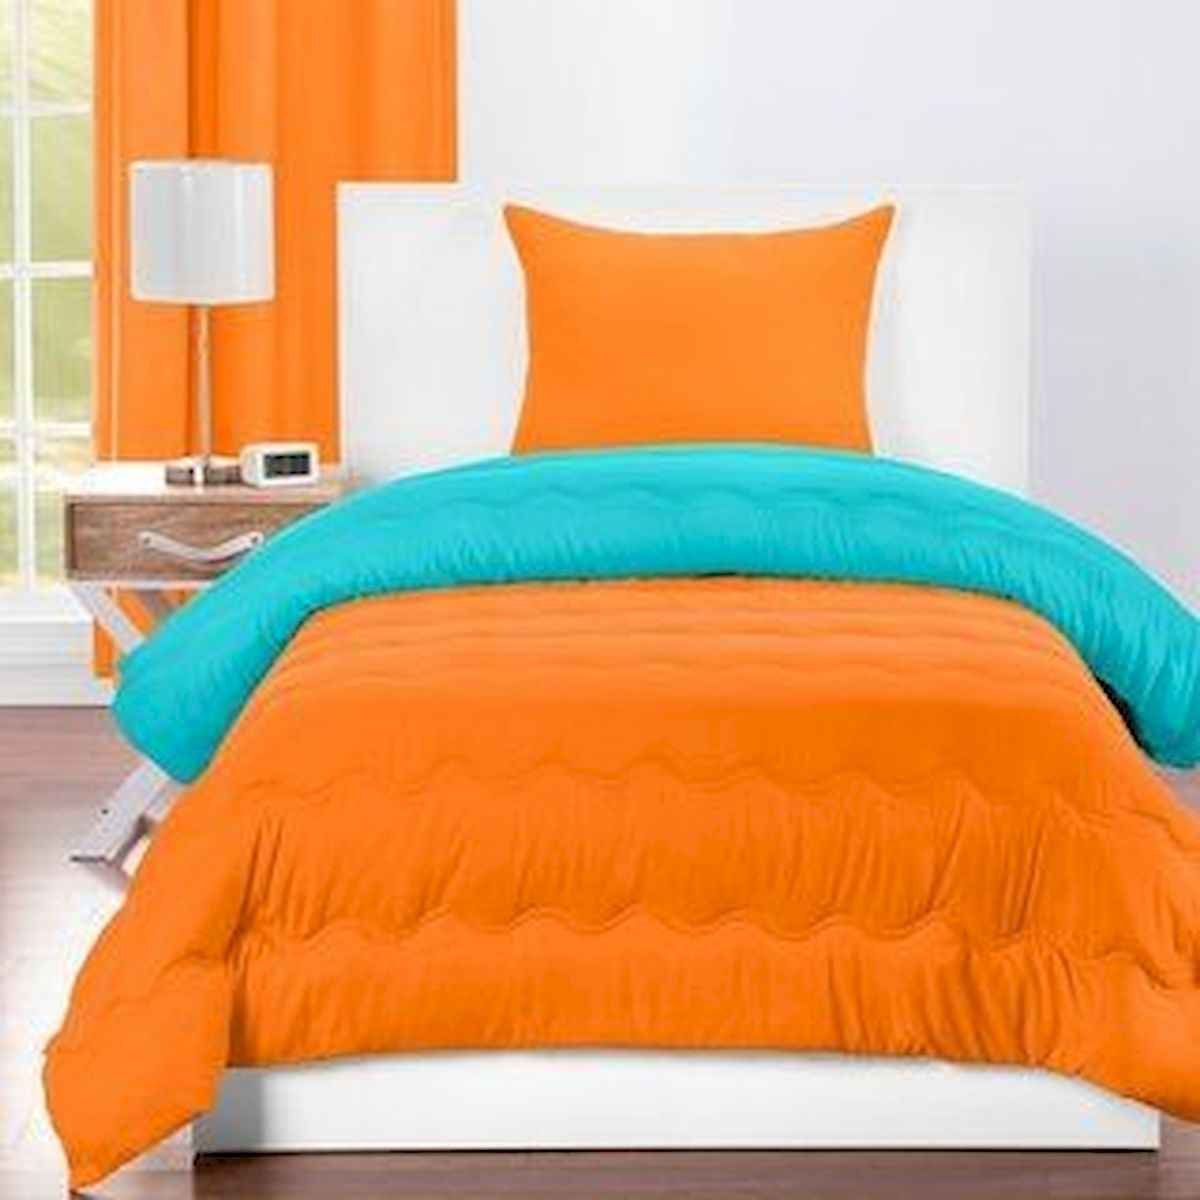 70+ Amazing Colorful Bedroom Decor Ideas And Remodel for Summer Project (7)